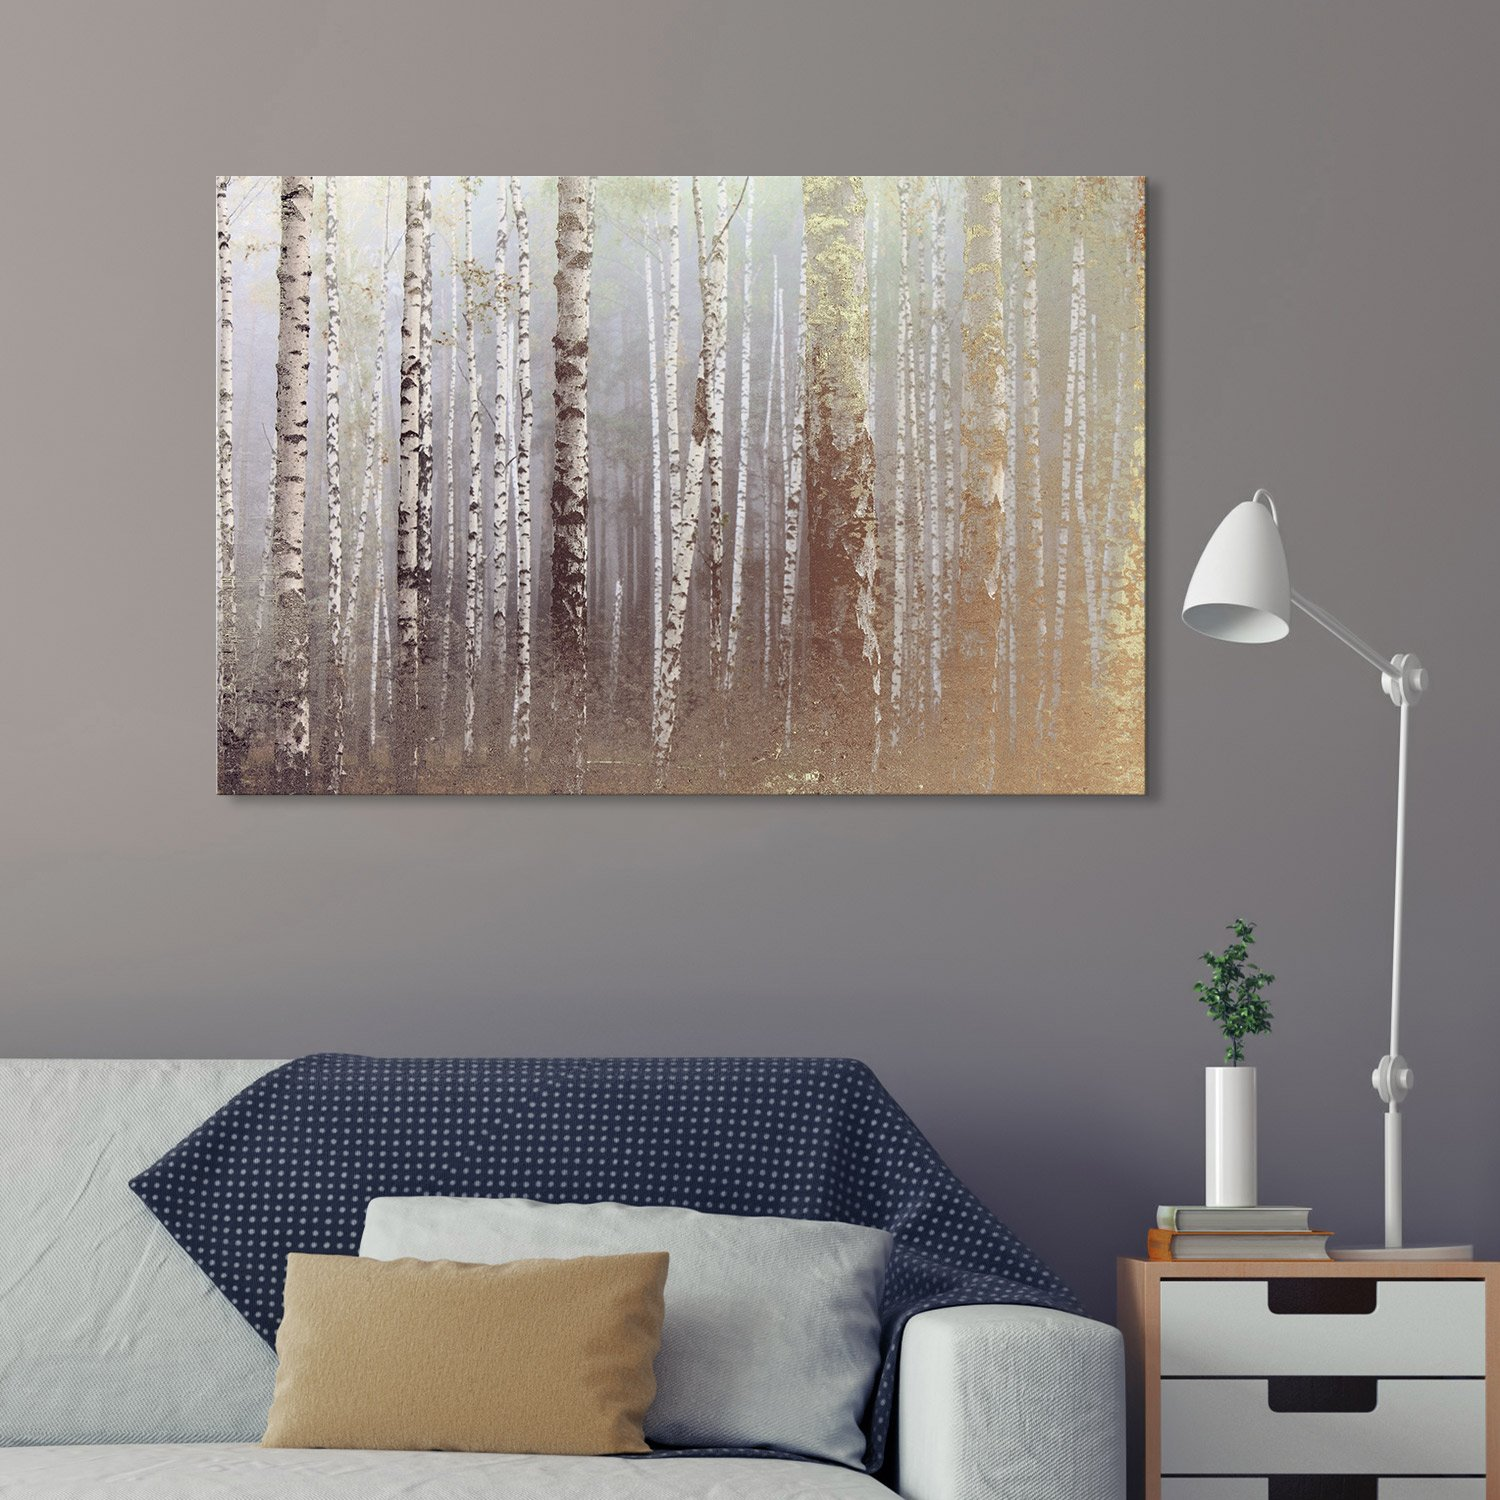 Canvas Wall Art - Birch Trees Forest on a Foggy Day - Giclee Print Gallery Wrap Modern Home Art Ready to Hang - 16x24 inches